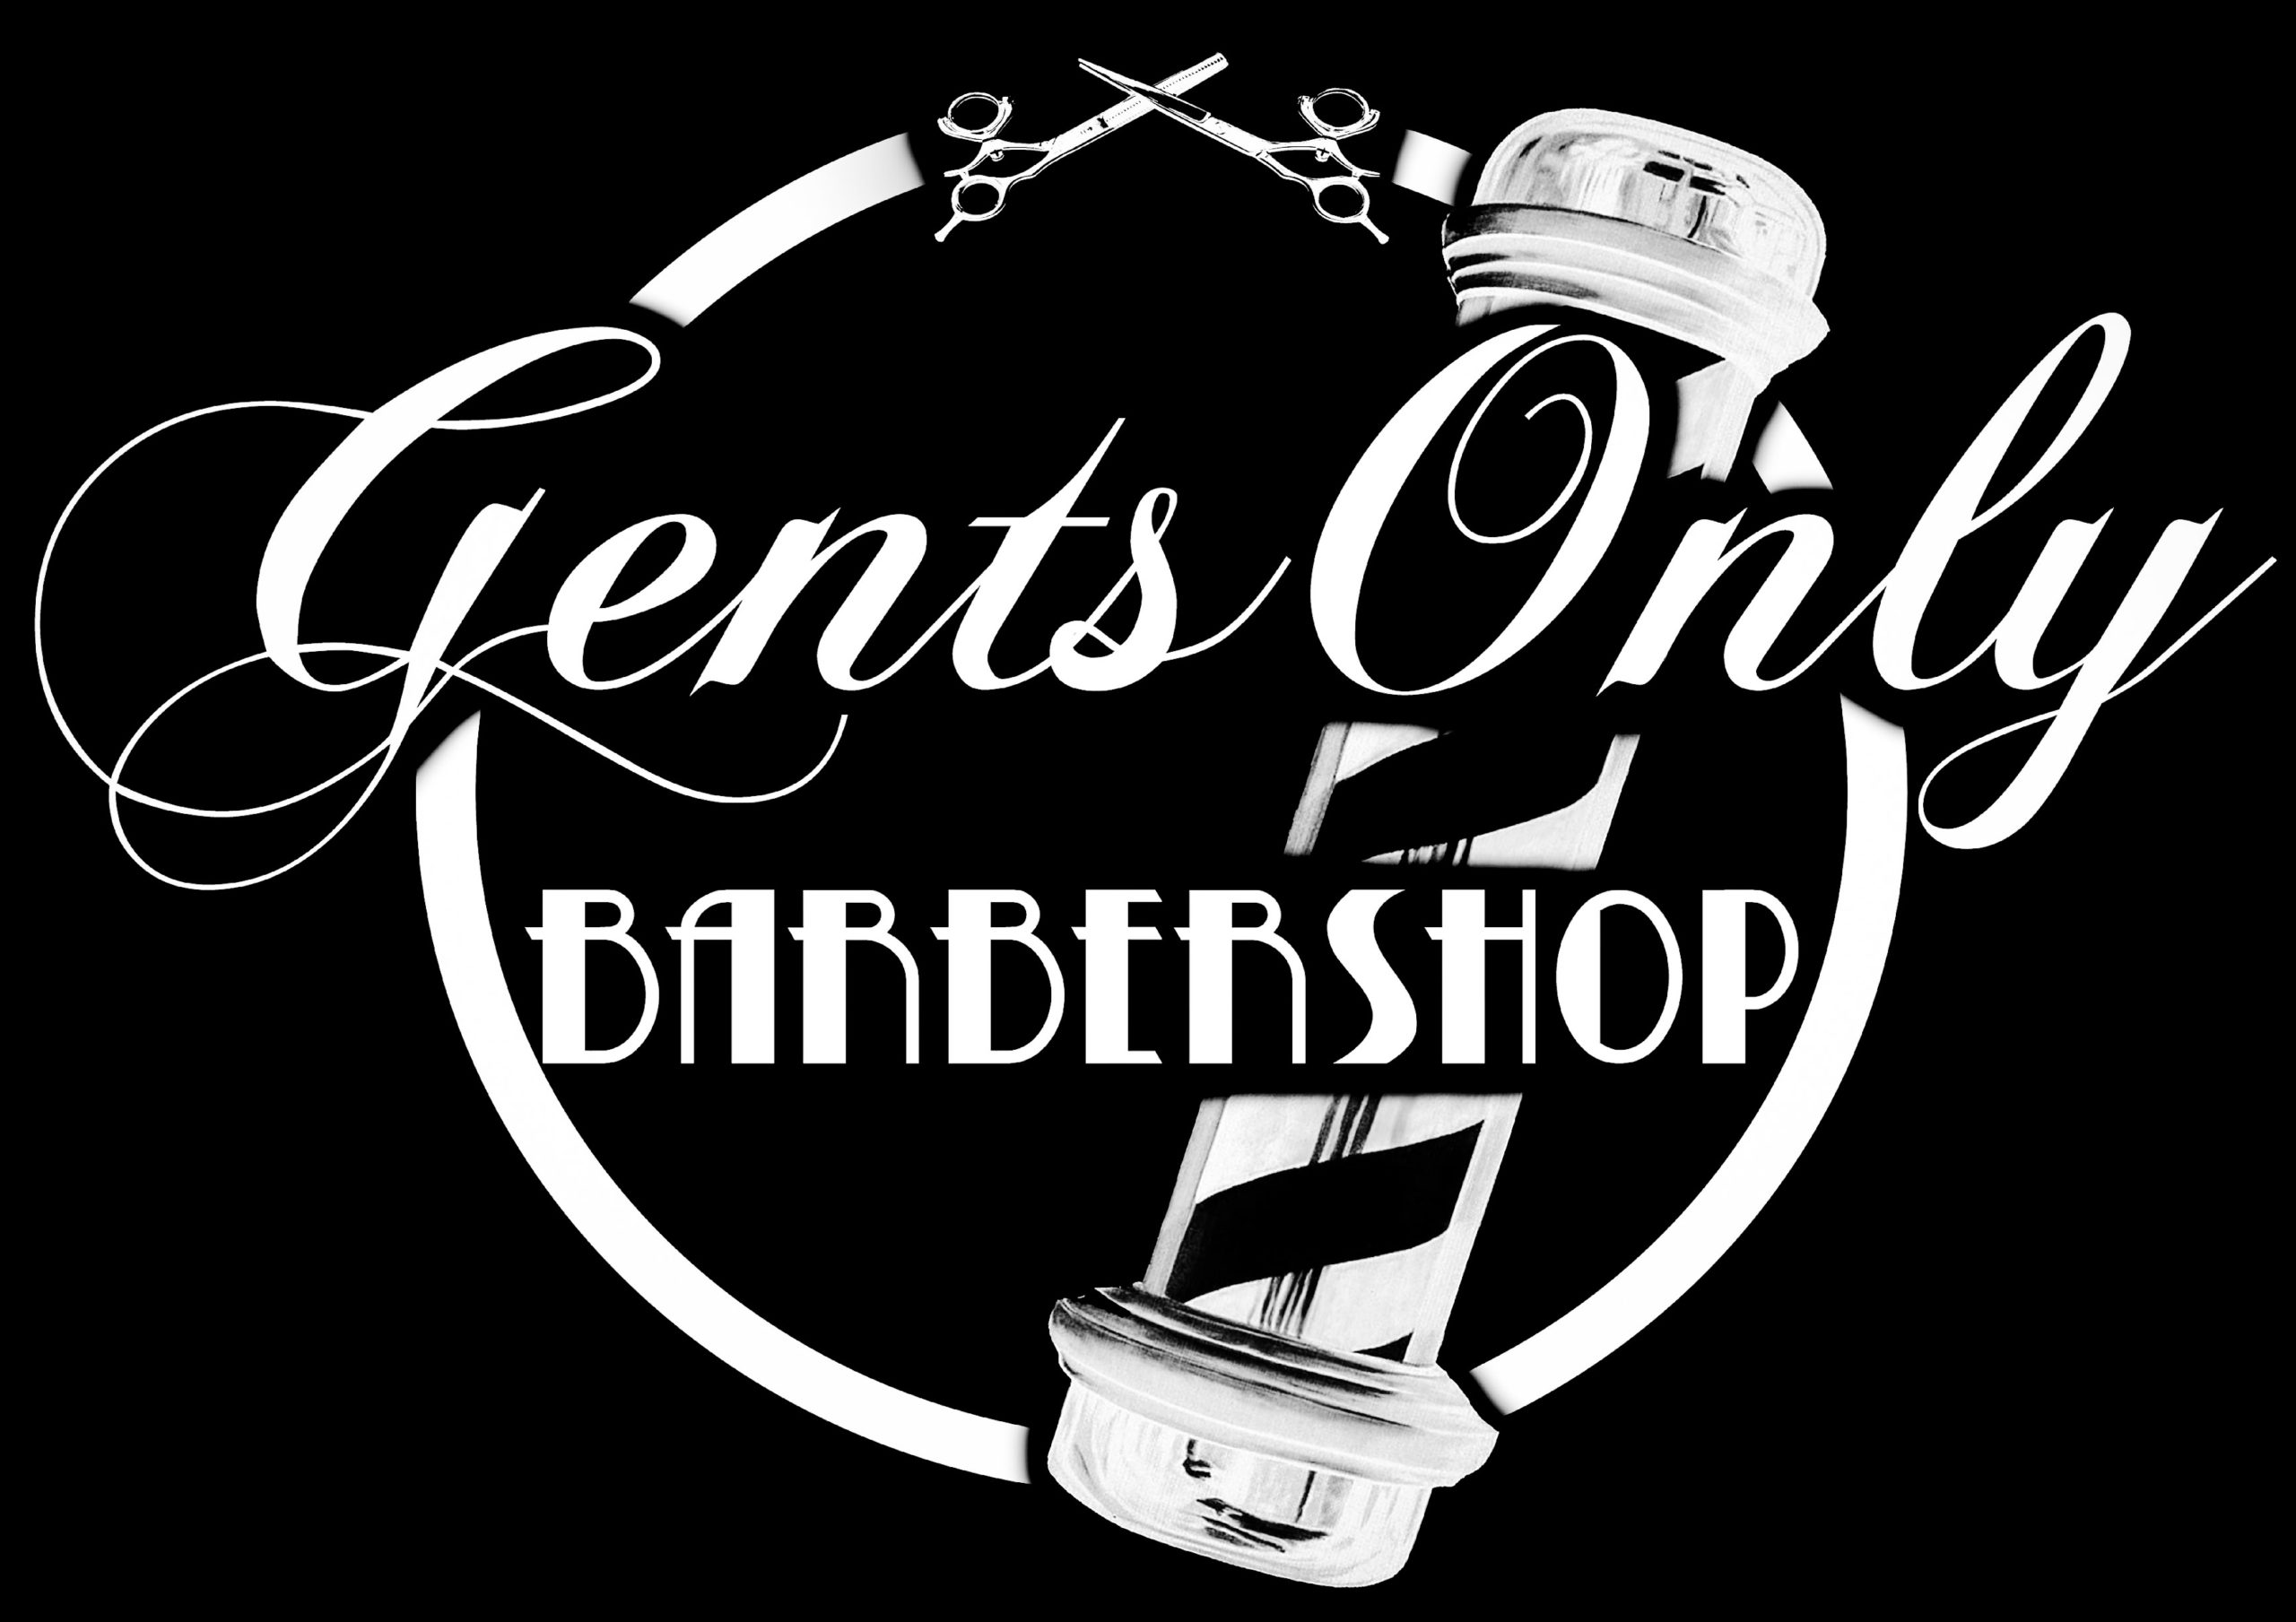 Barbershop Gents Only